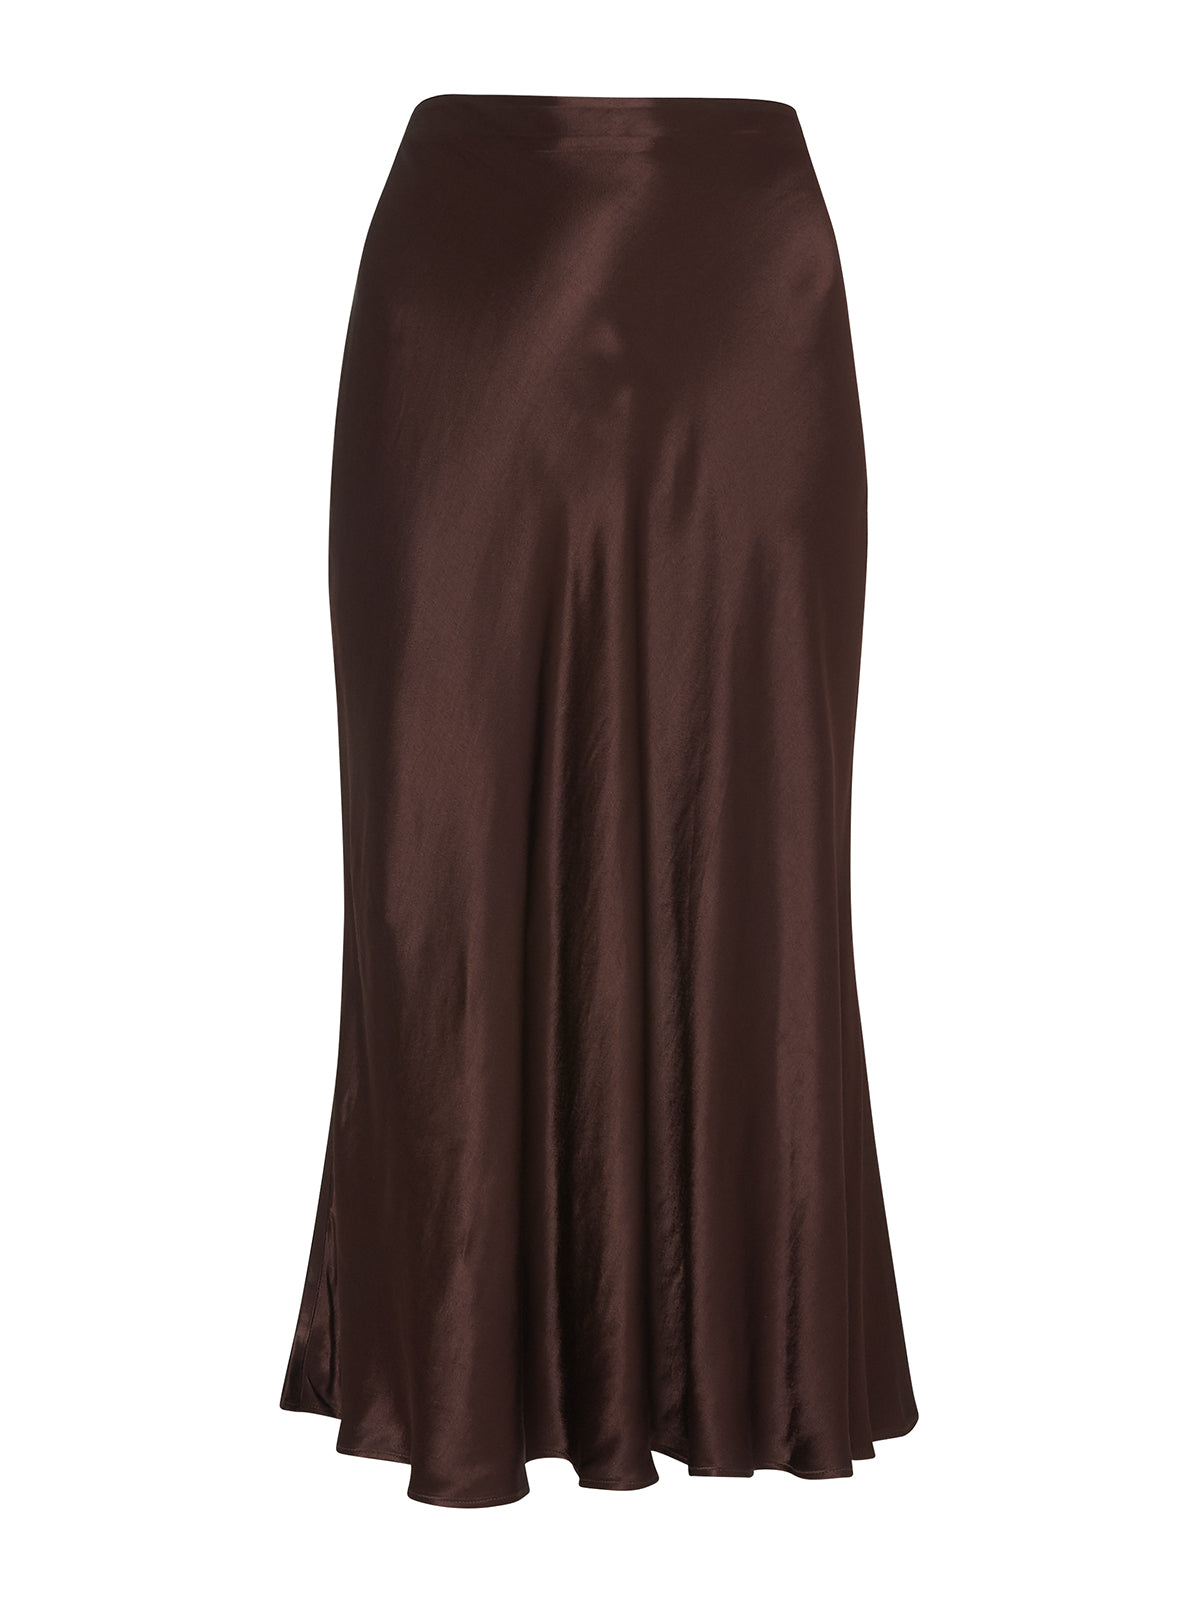 Marie Chocolate Midi Skirt by KITRI Studio